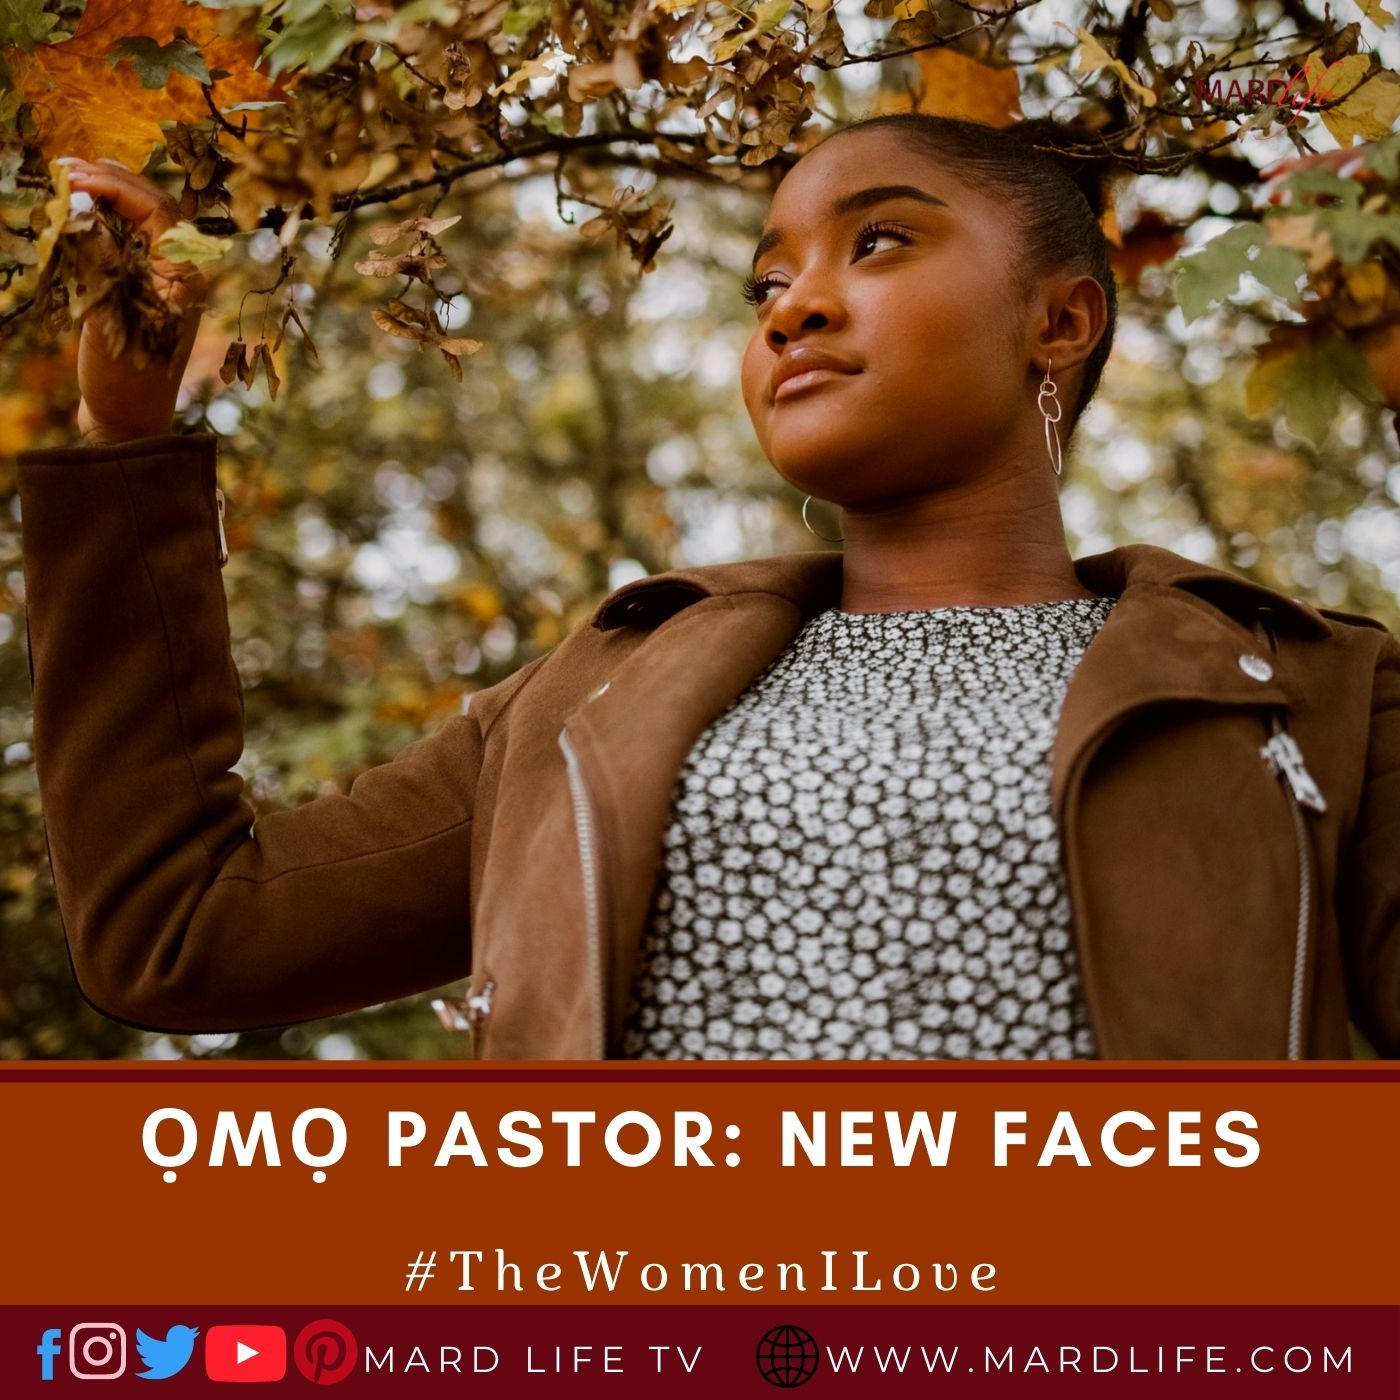 Omo Pastor, Pastor, Church, Preacher, Leader, Missionary, Daughter, Wife, Sisters, Visitors, Strangers,